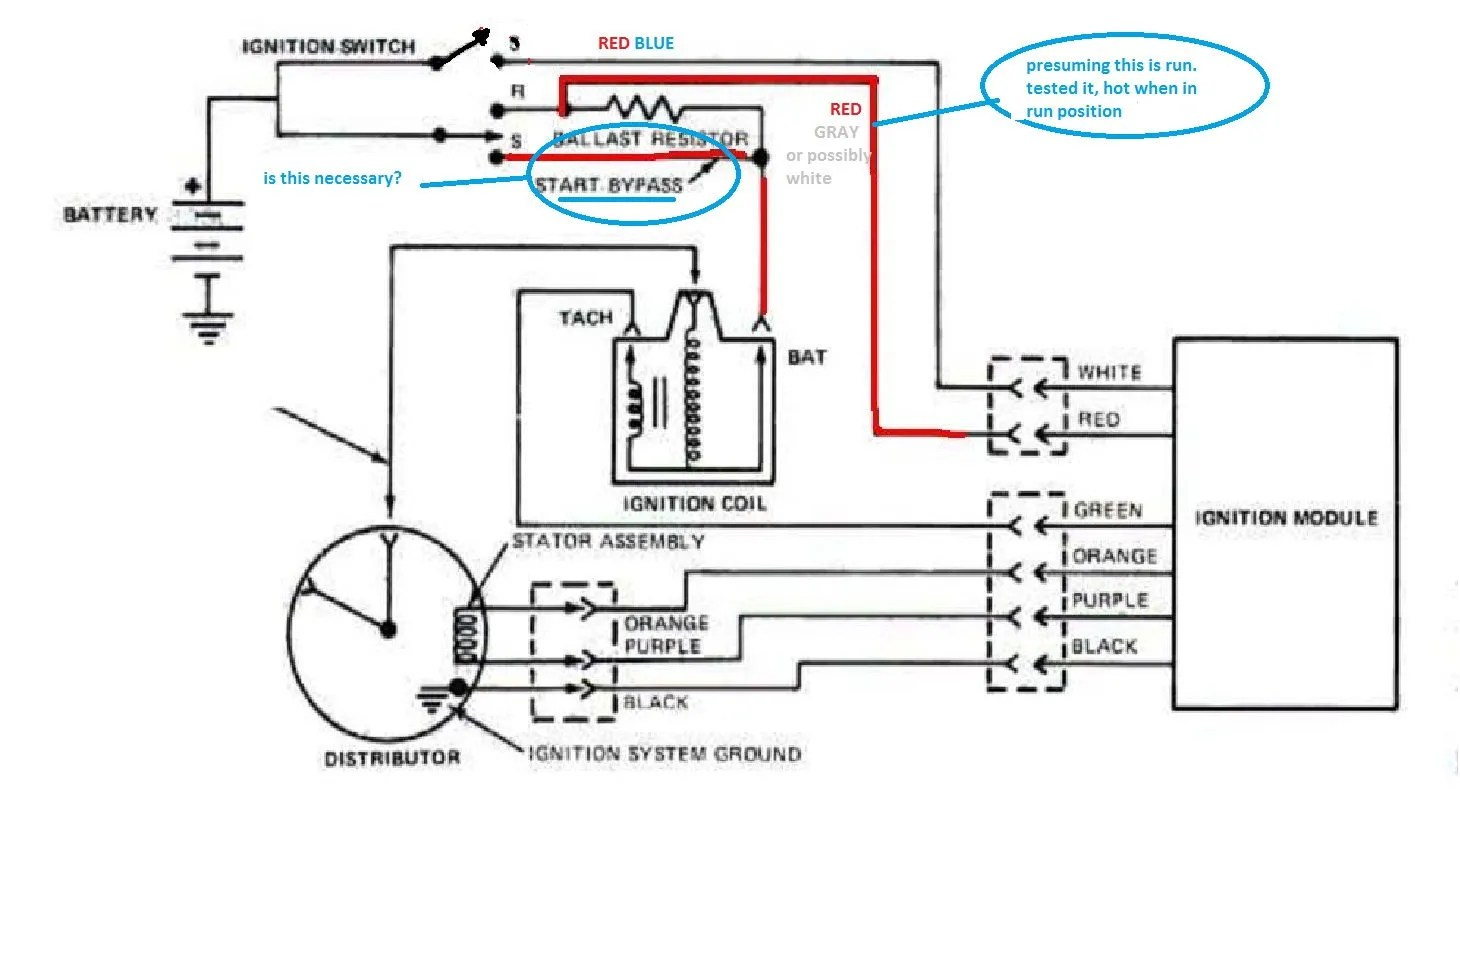 hight resolution of ford ignition switch wiring diagram 1987 wiring diagram third level ford cop ignition wiring diagrams ford ignition wiring